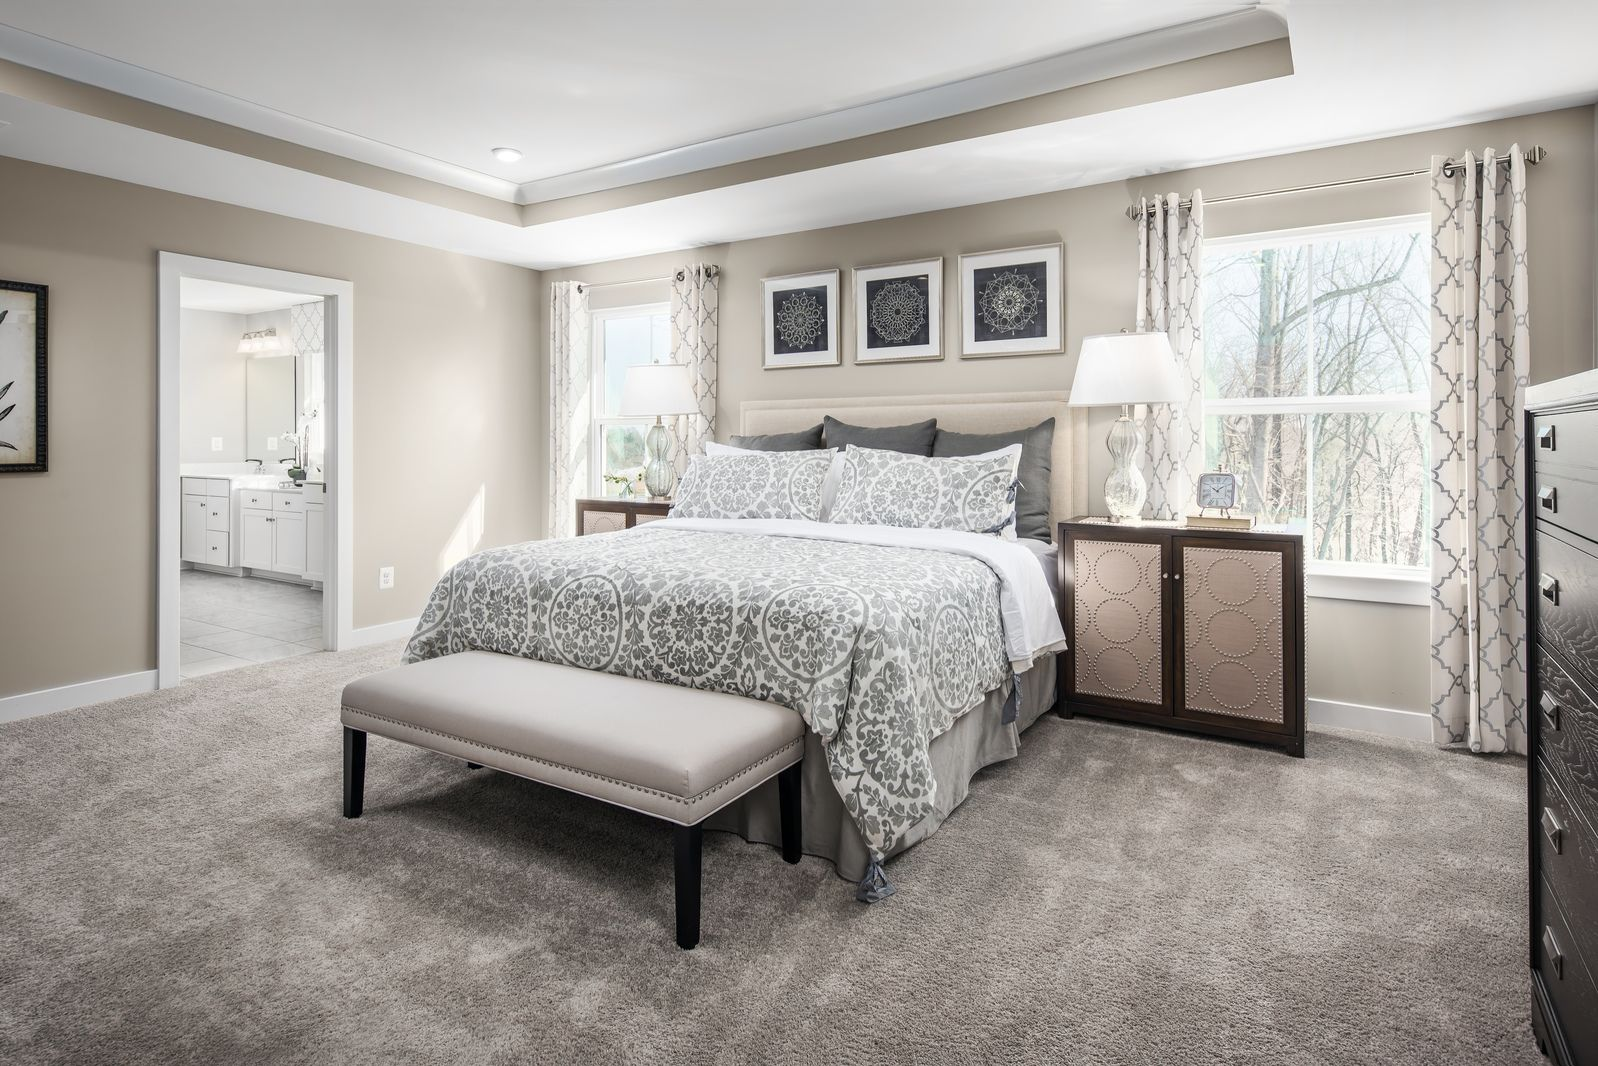 Bedroom featured in the Seneca By Ryan Homes in Outer Banks, NC